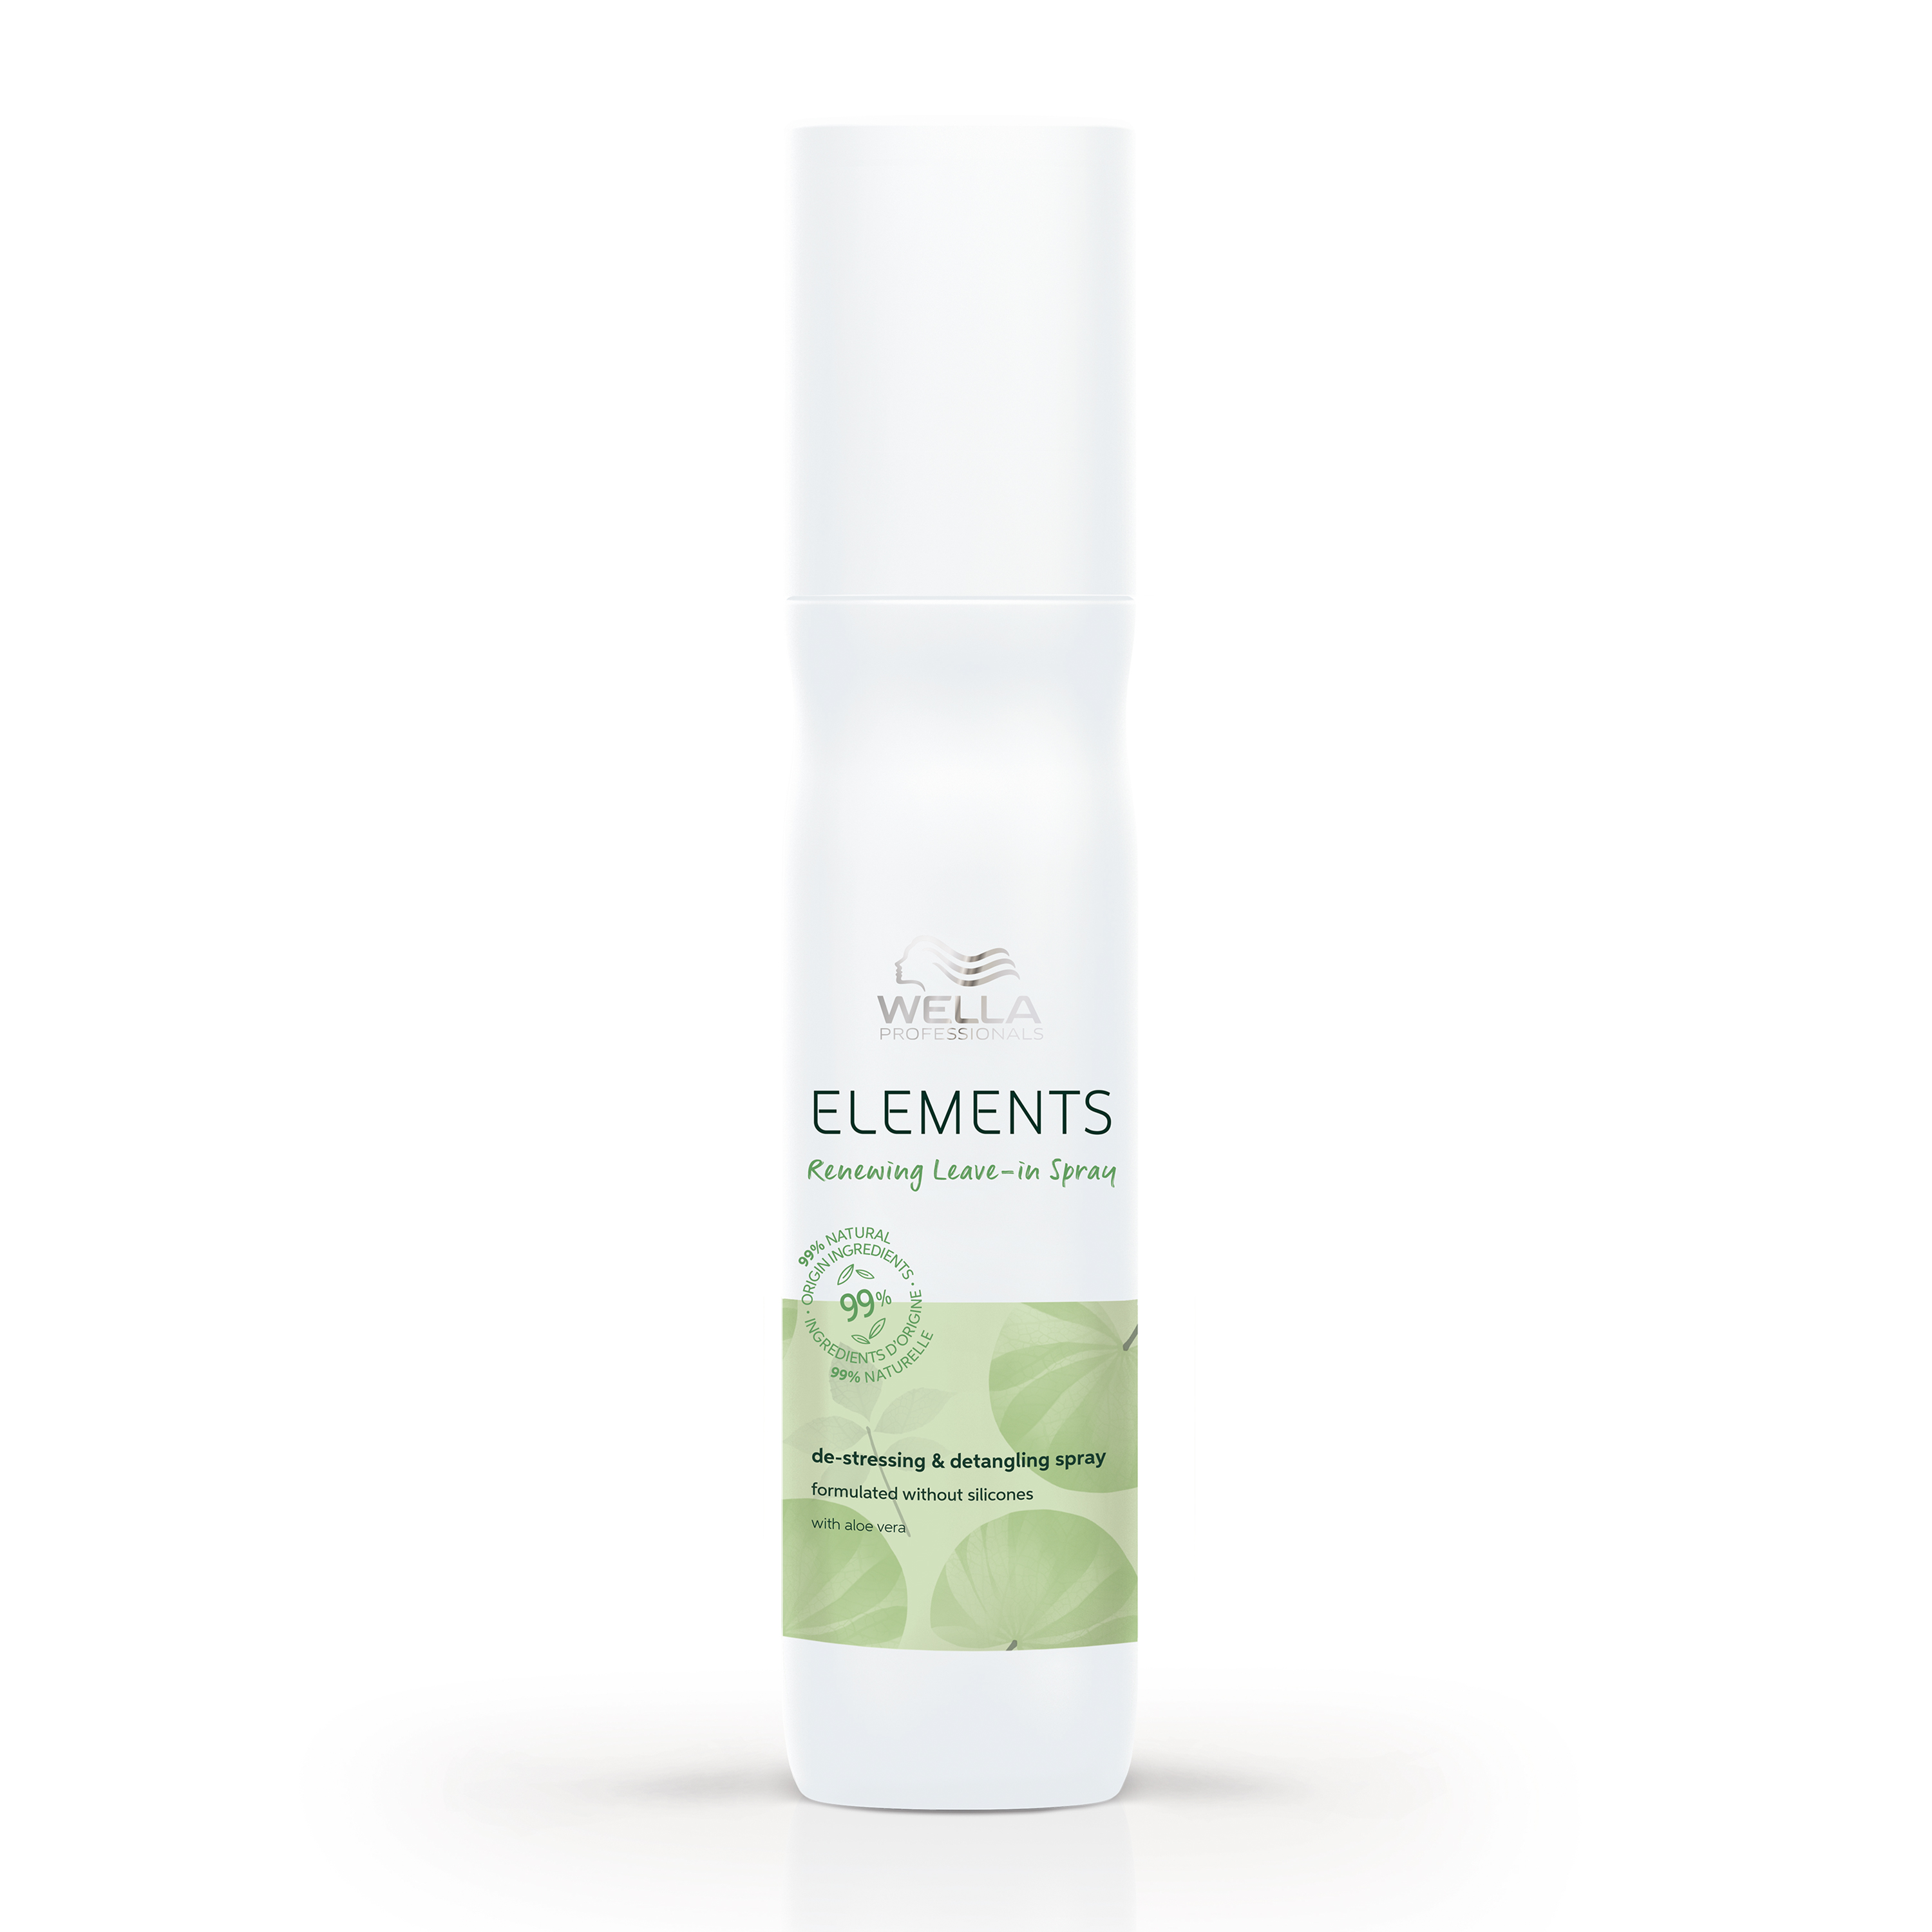 Wella Professionals Elements Renewing Leave-in Spray 150 ml